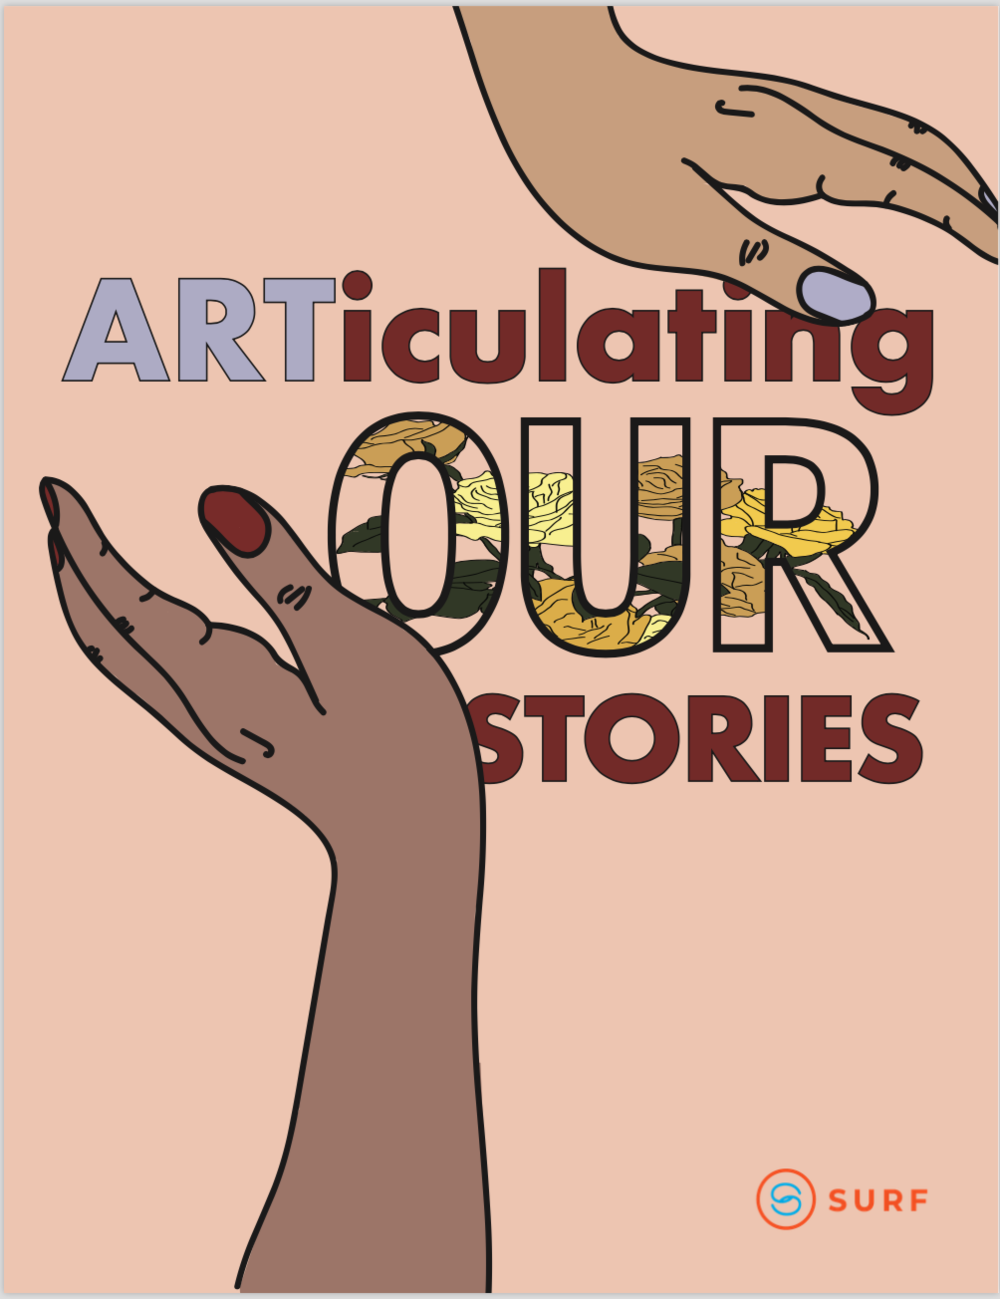 ArticulatingOurStoriesCover.png